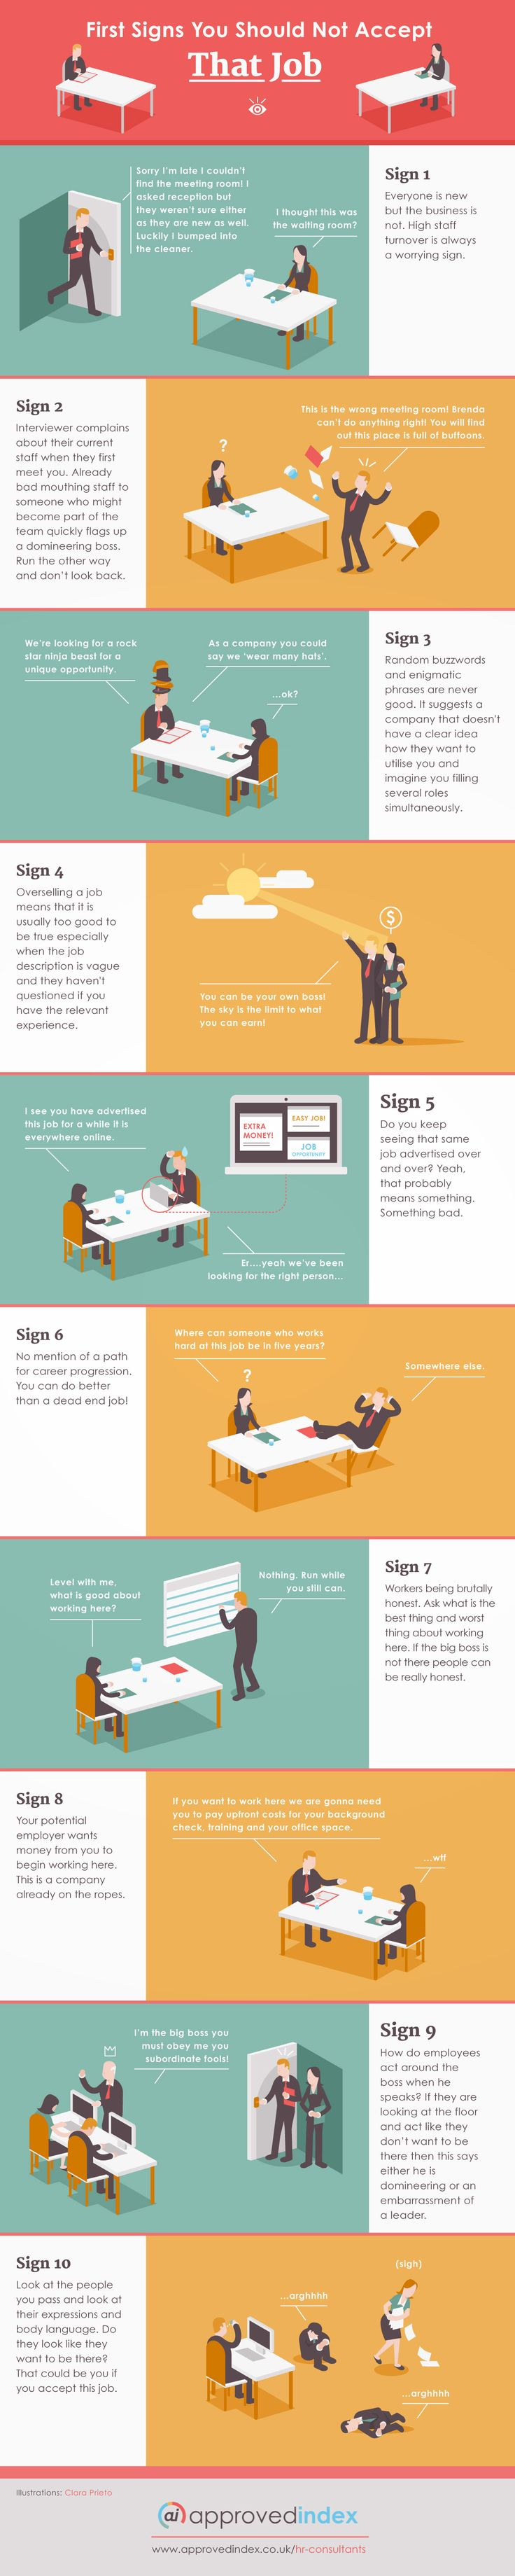 Ten hilarious signs that you should not take that job (Infographic)